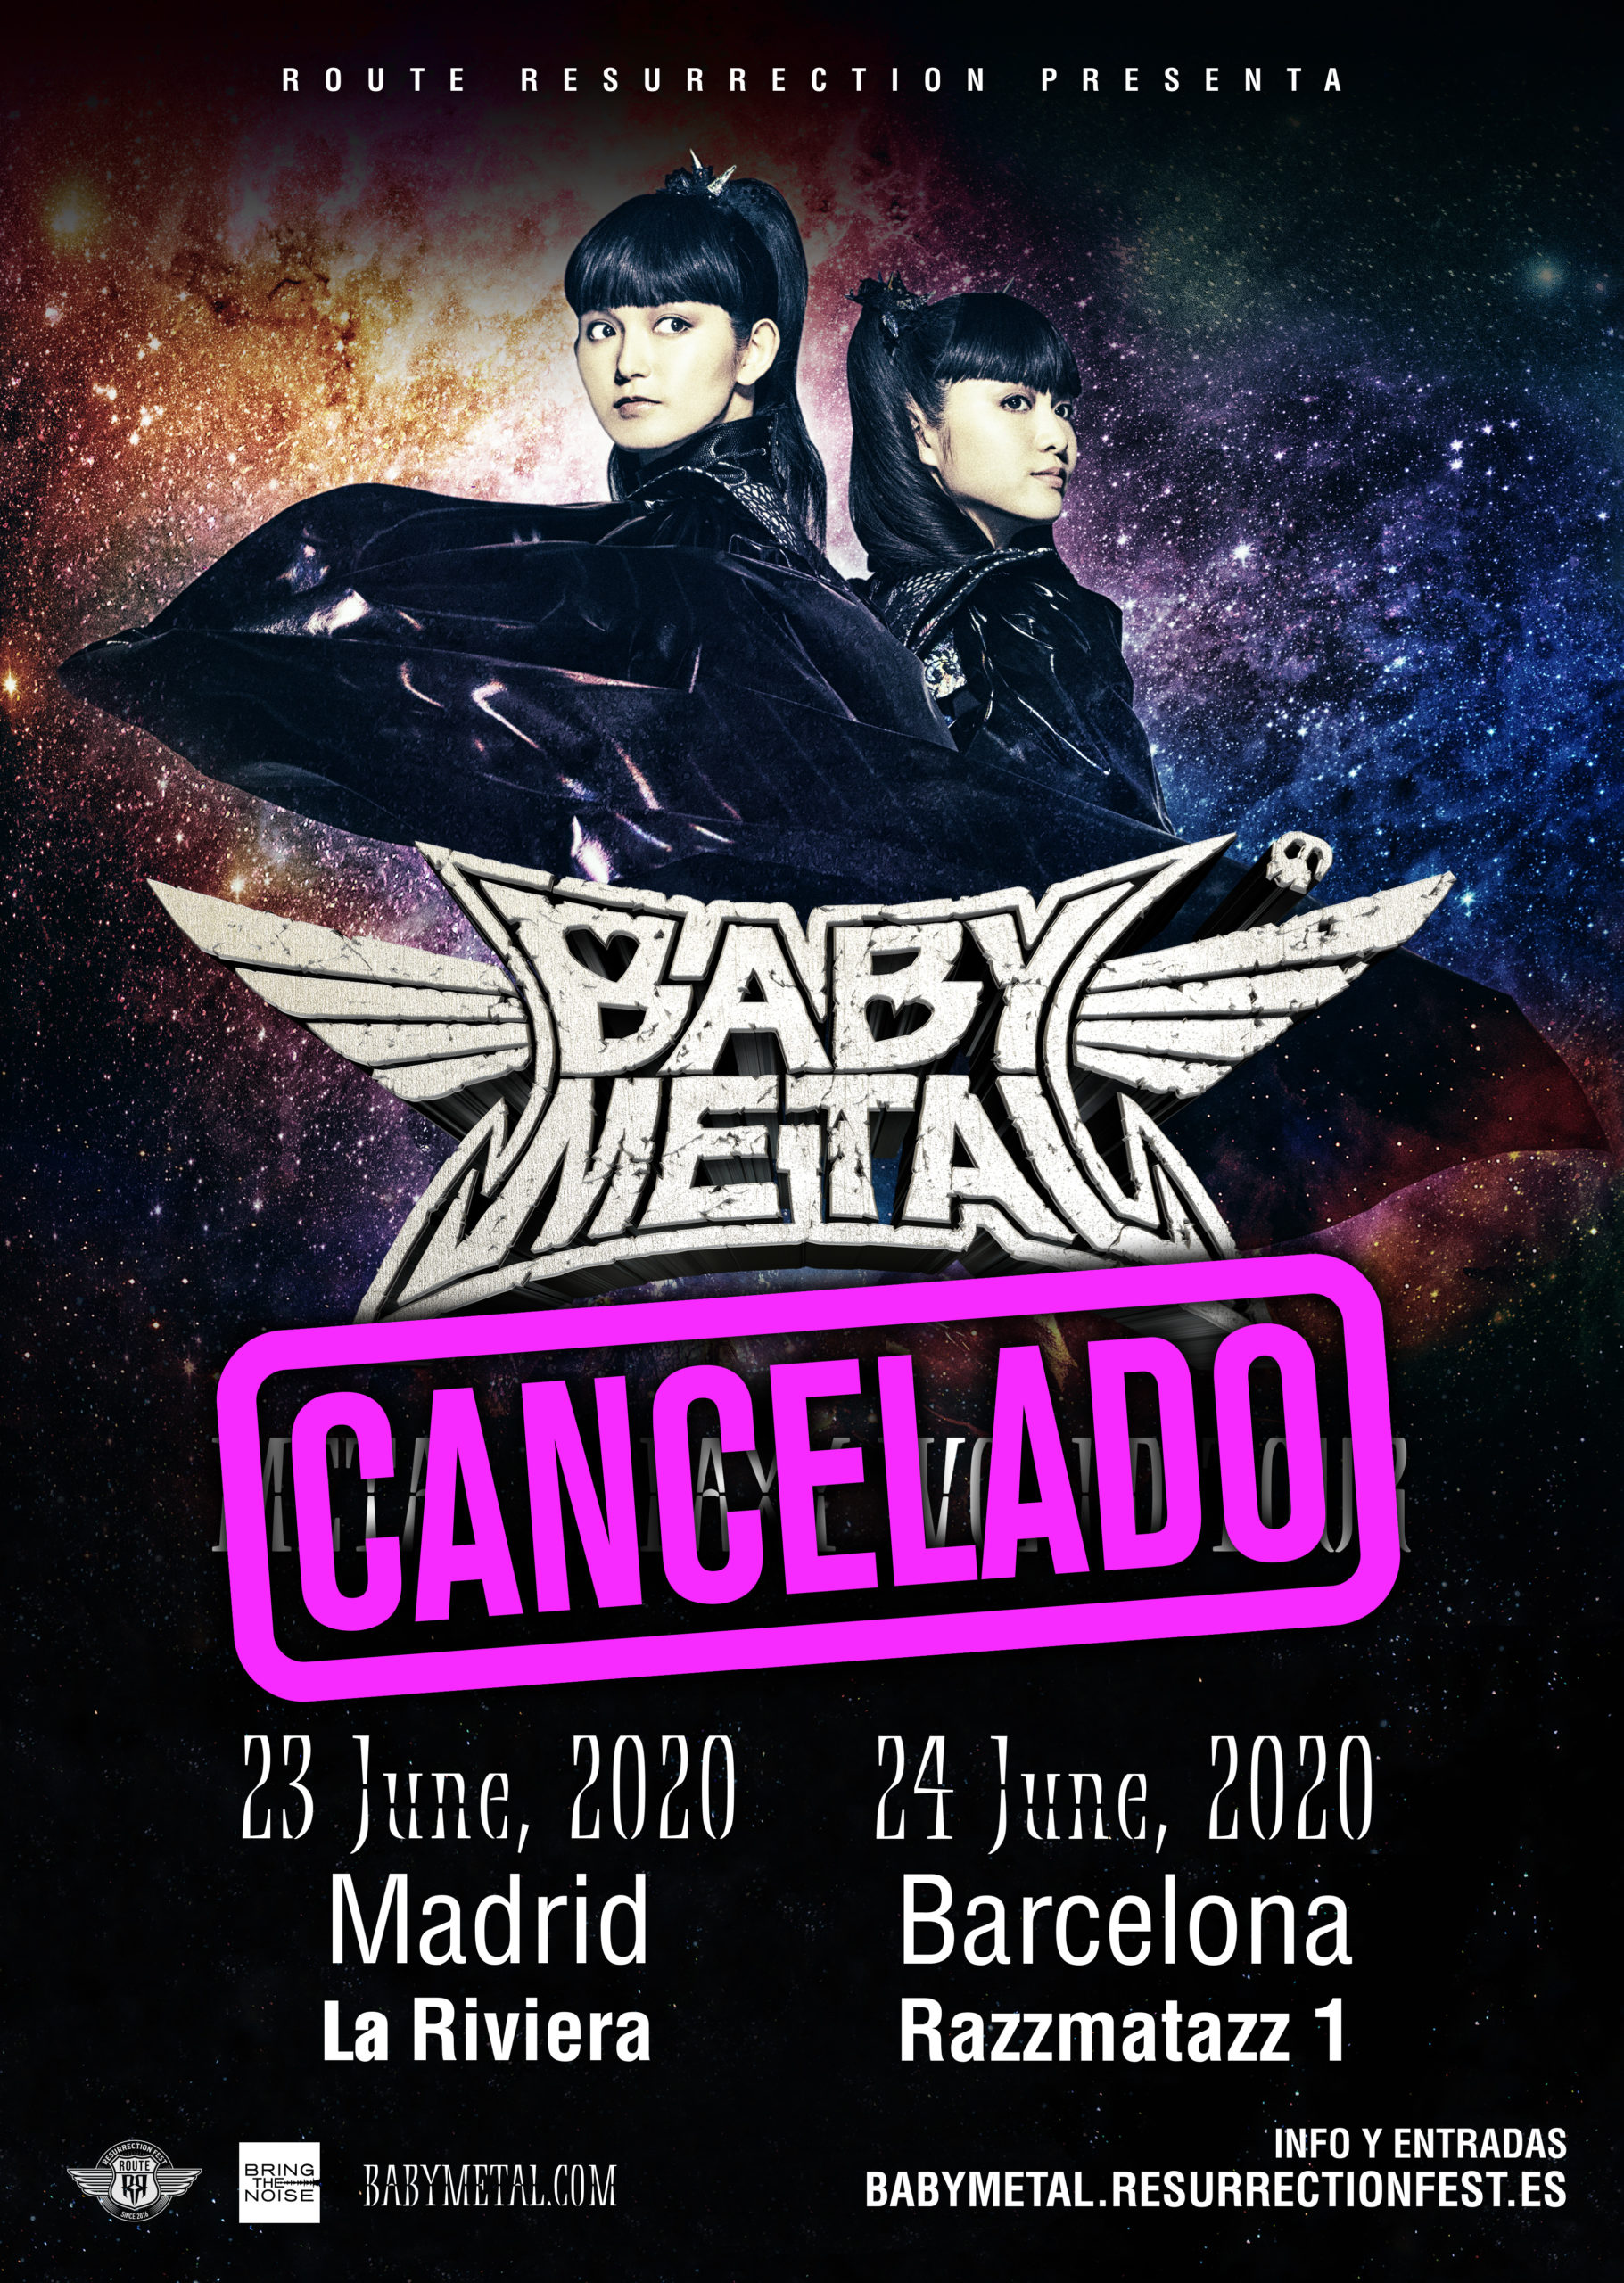 Route Resurrection 2020: Babymetal (Barcelona)